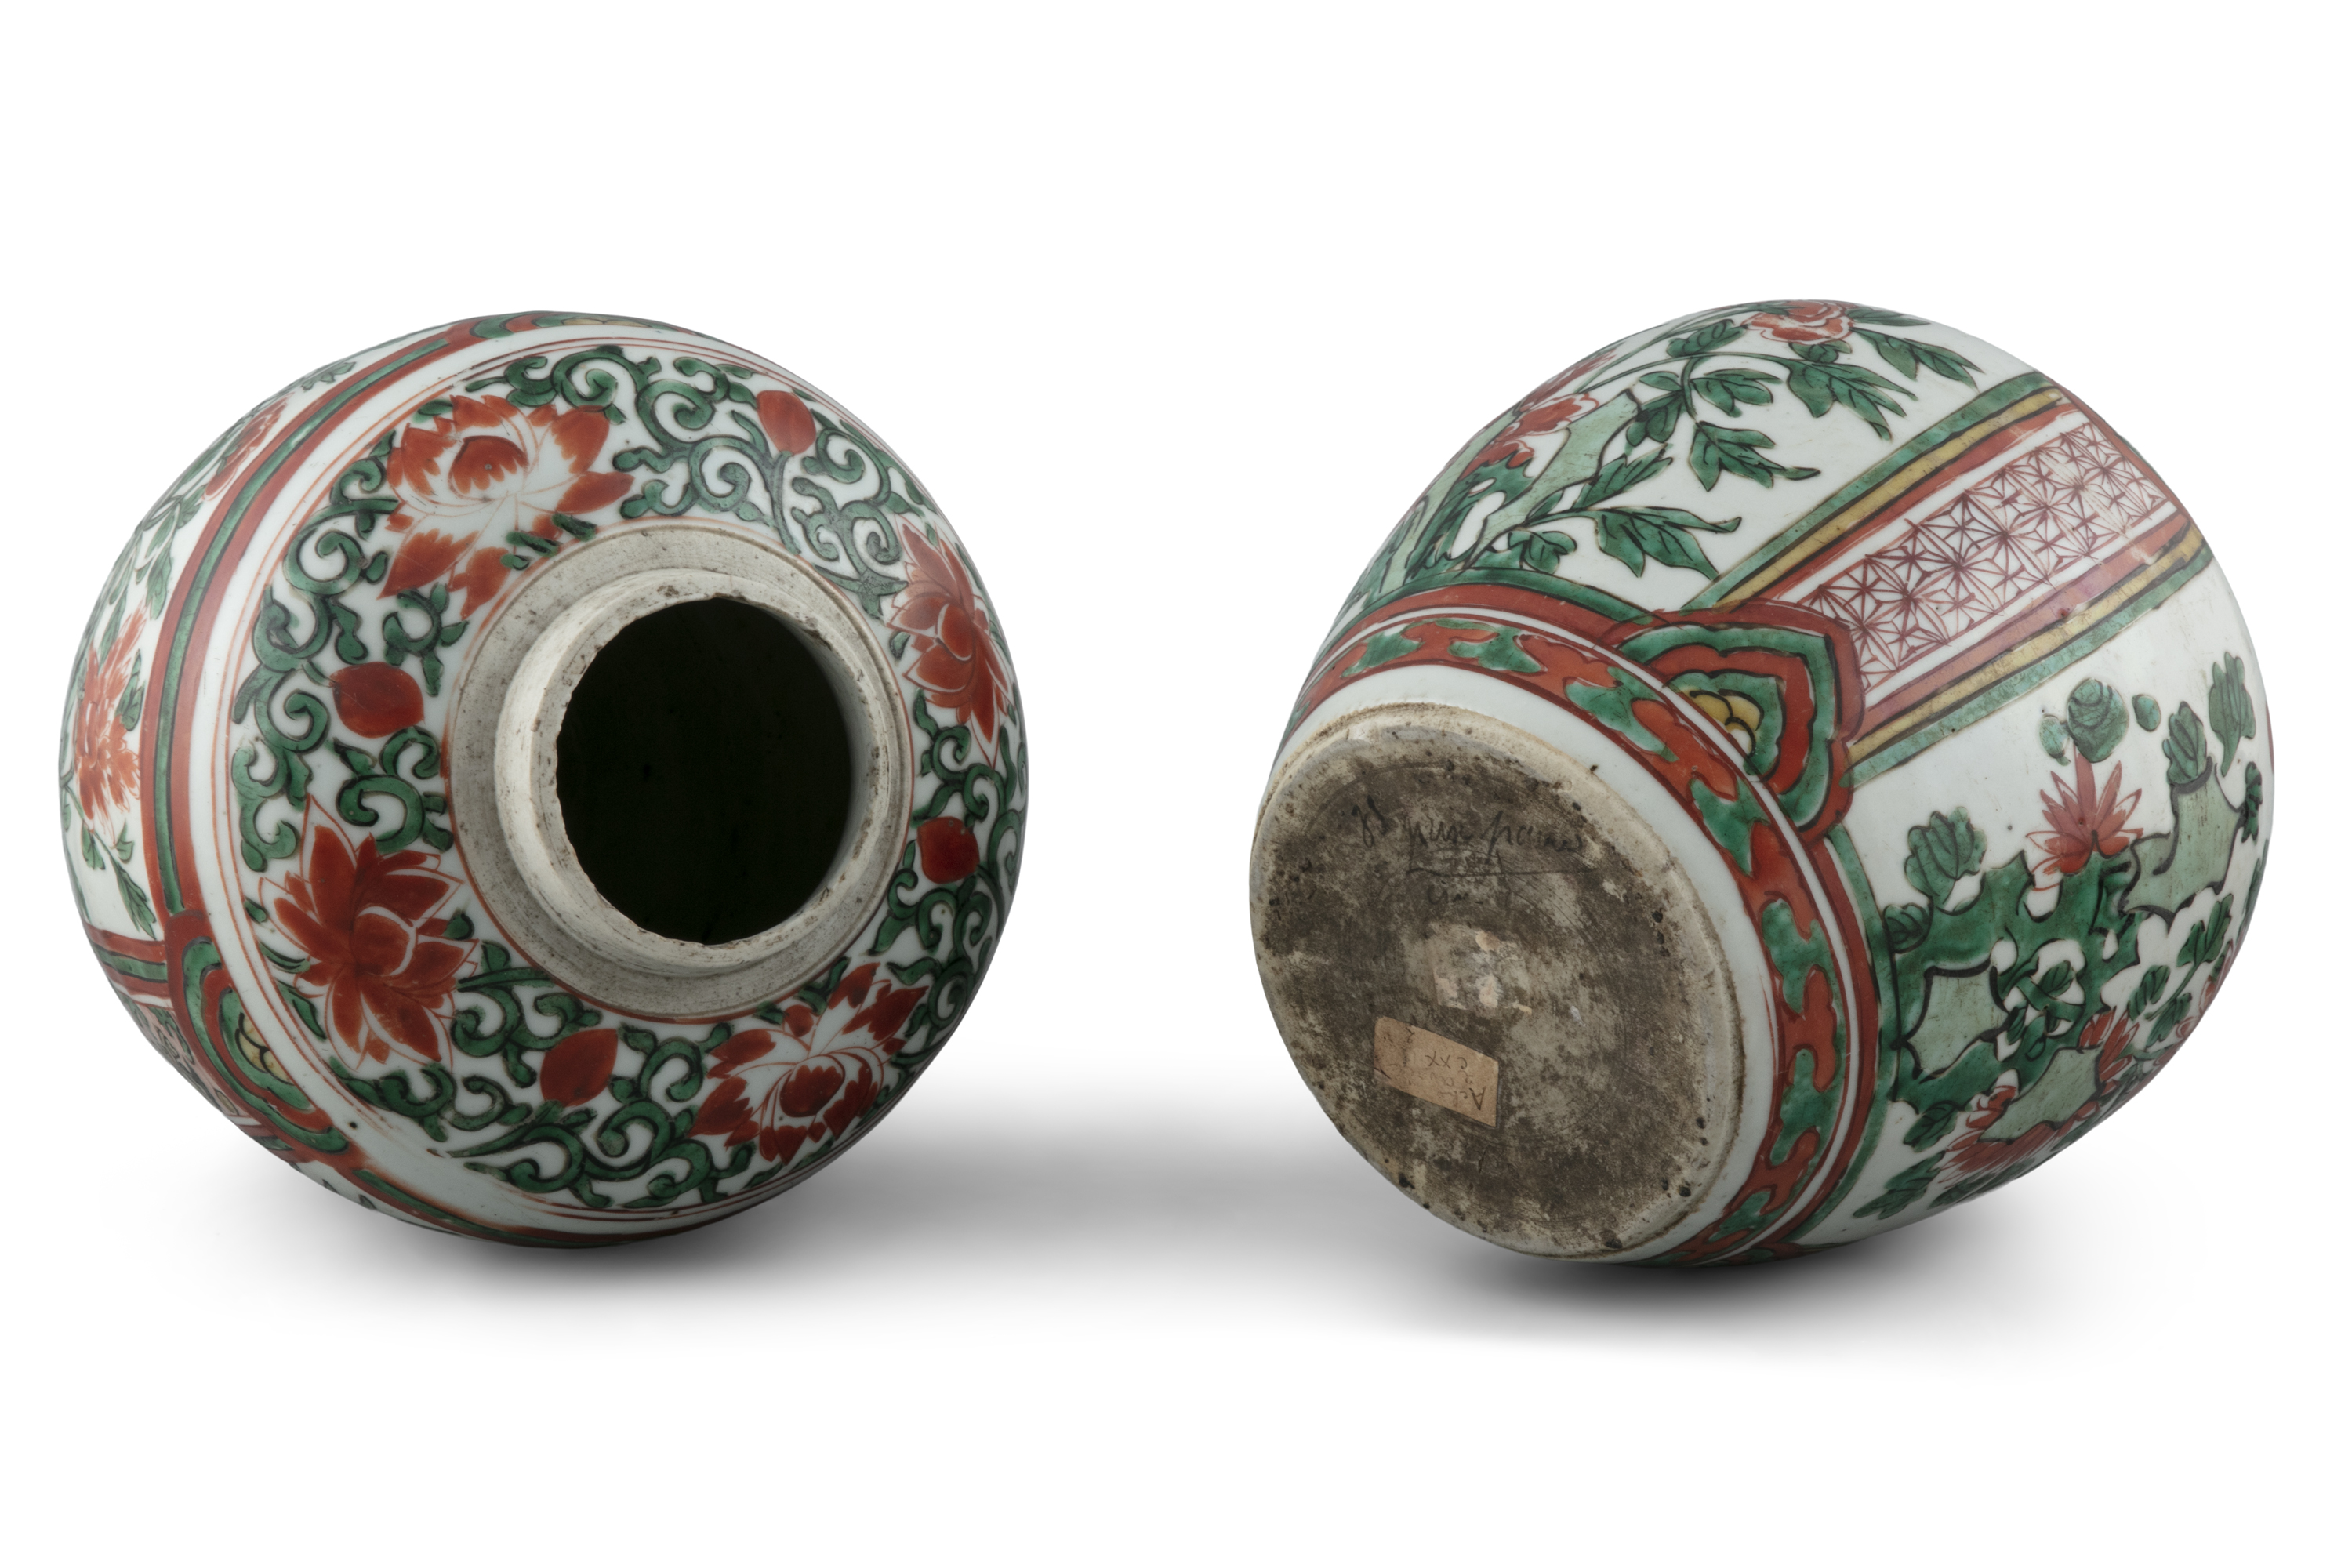 A NEAR PAIR OF WUCAI 'CHI DRAGONS' PORCELAIN GINGER JARS China, Transitional period, 17th century - Image 10 of 17